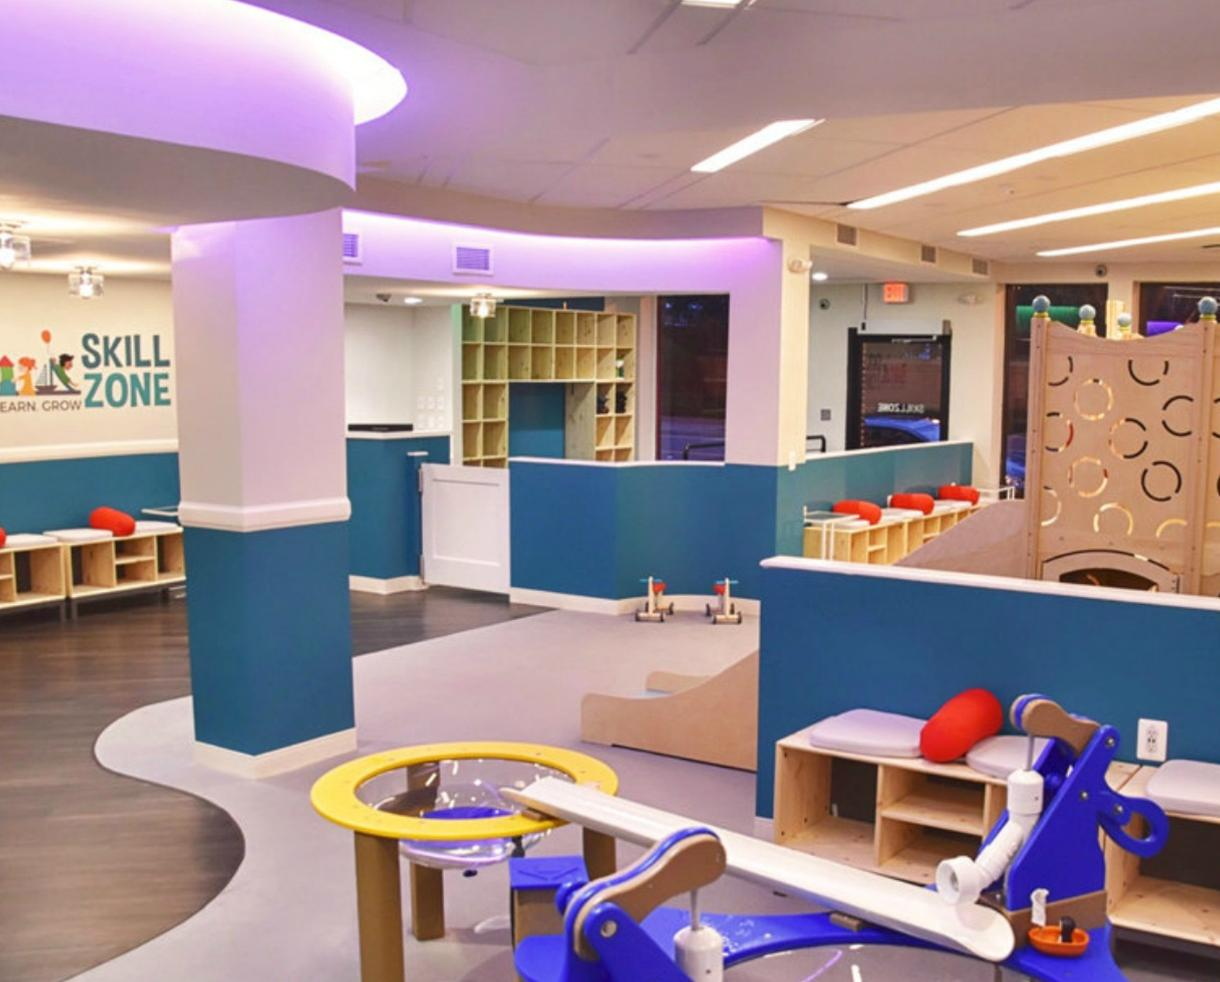 $10 for Afternoon Open Play Pass for Ages 0-6 at SkillZone - Washington, DC (50% Off)